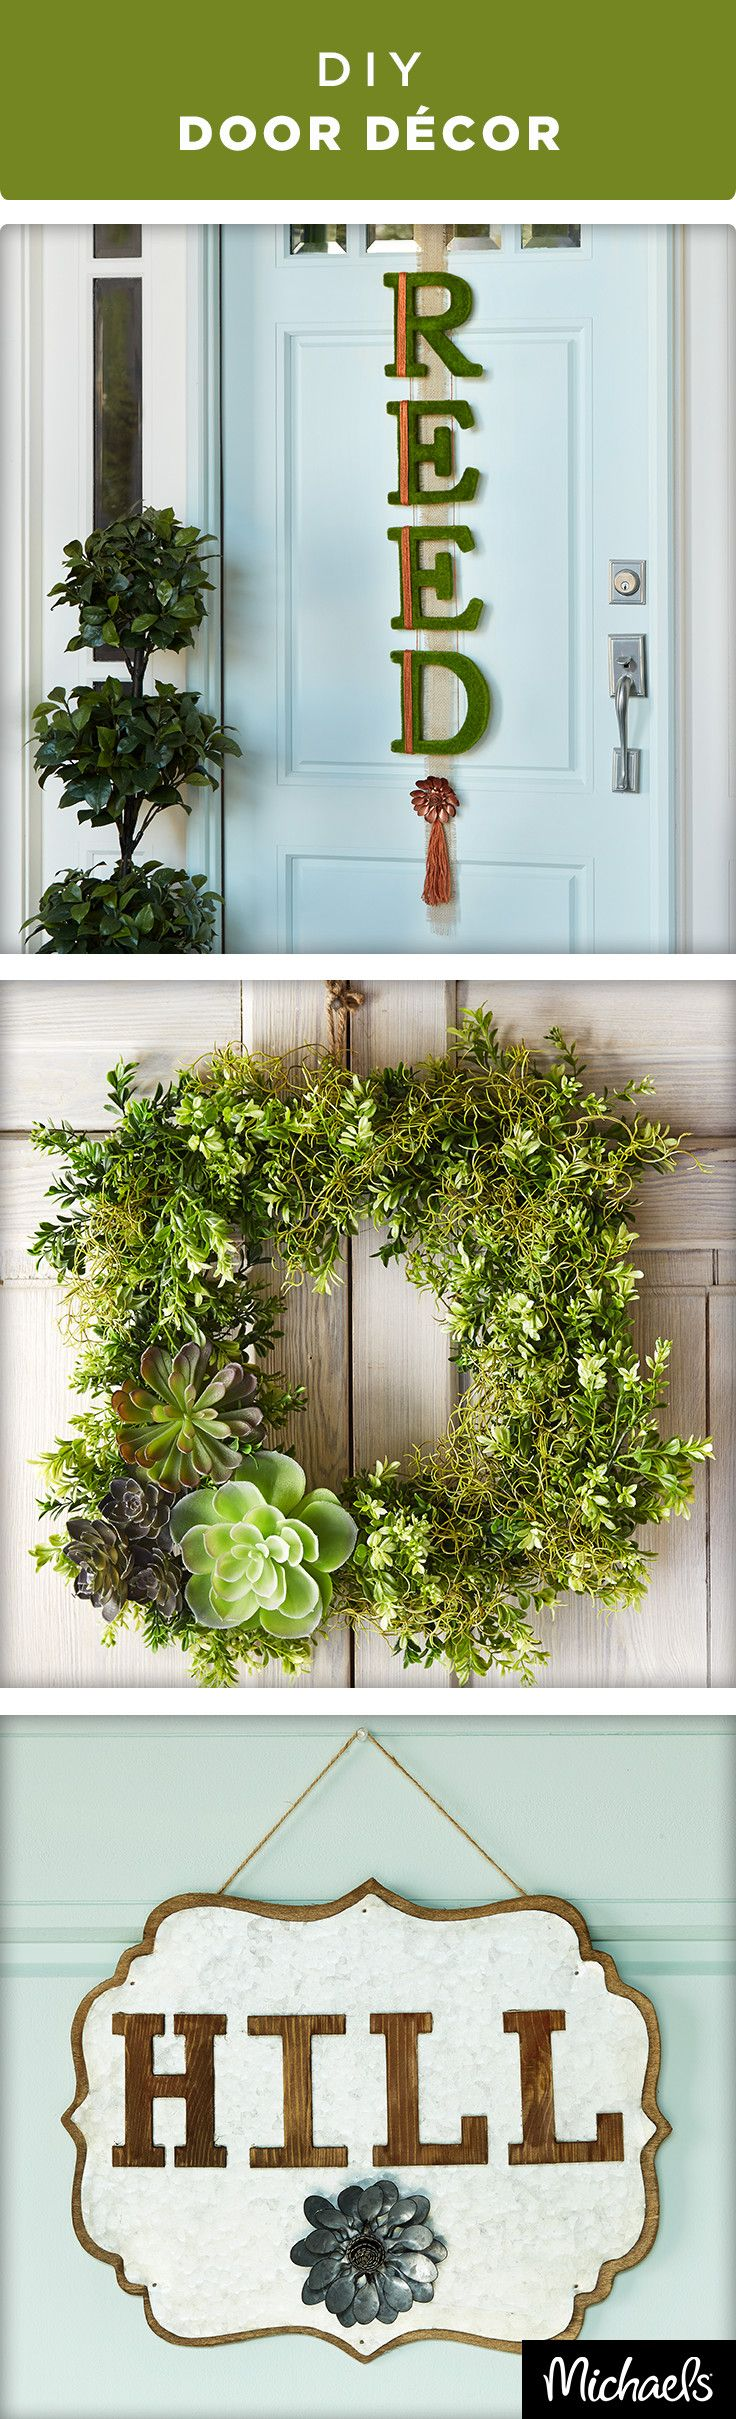 Embrace The Warmer Temps And Refresh Your Home With These Spring Door D Cor Ideas You